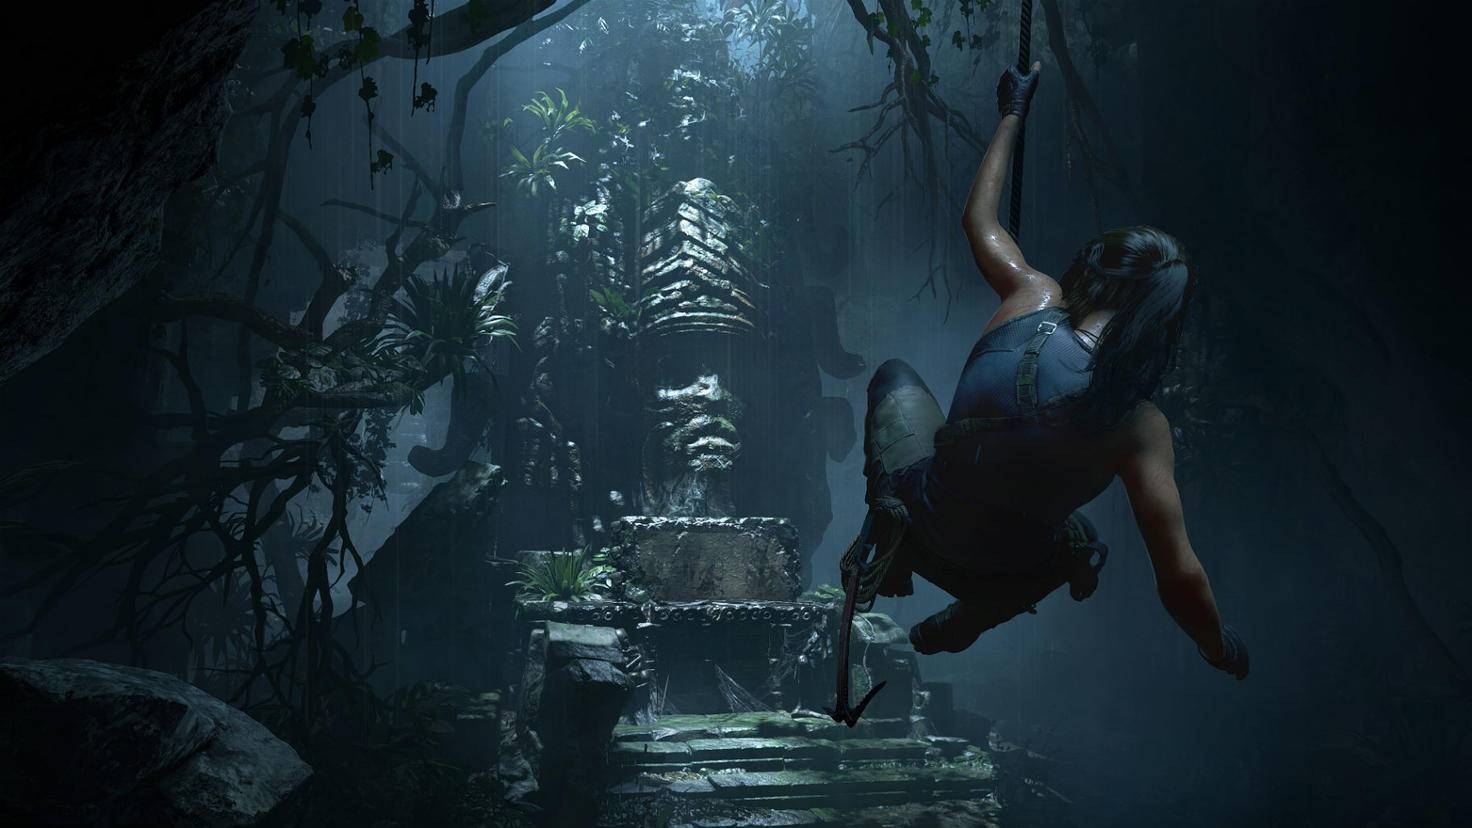 shadow-of-the-tomb-raider-screenshot-03